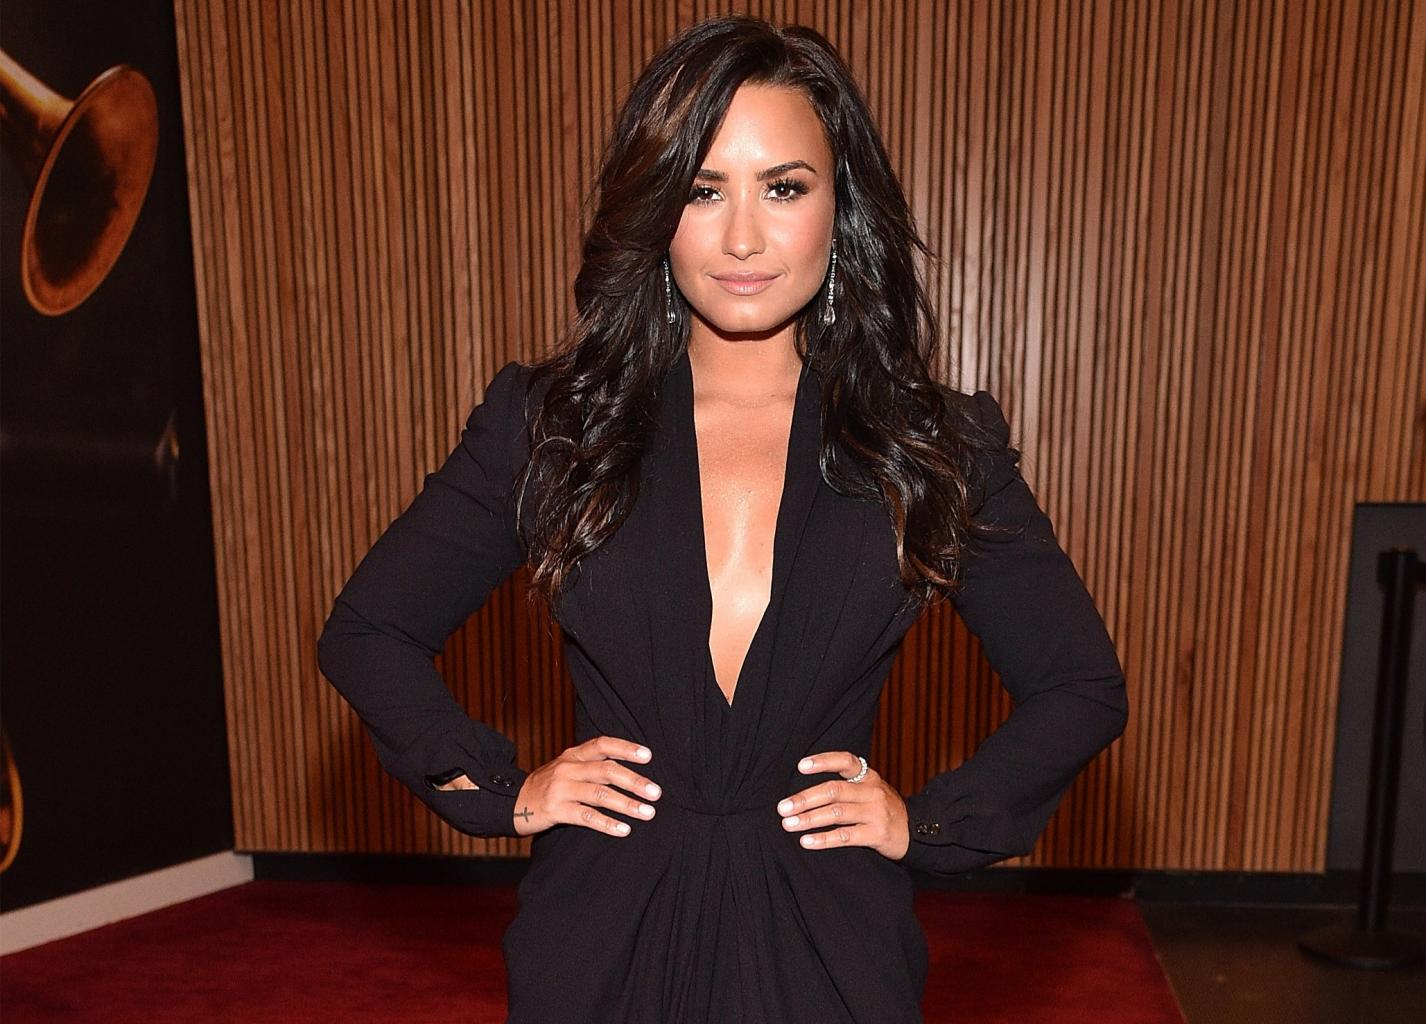 Demi Lovato Issues Heartfelt 'Thank You' to Her Fans as She Teases 'New Chapter'